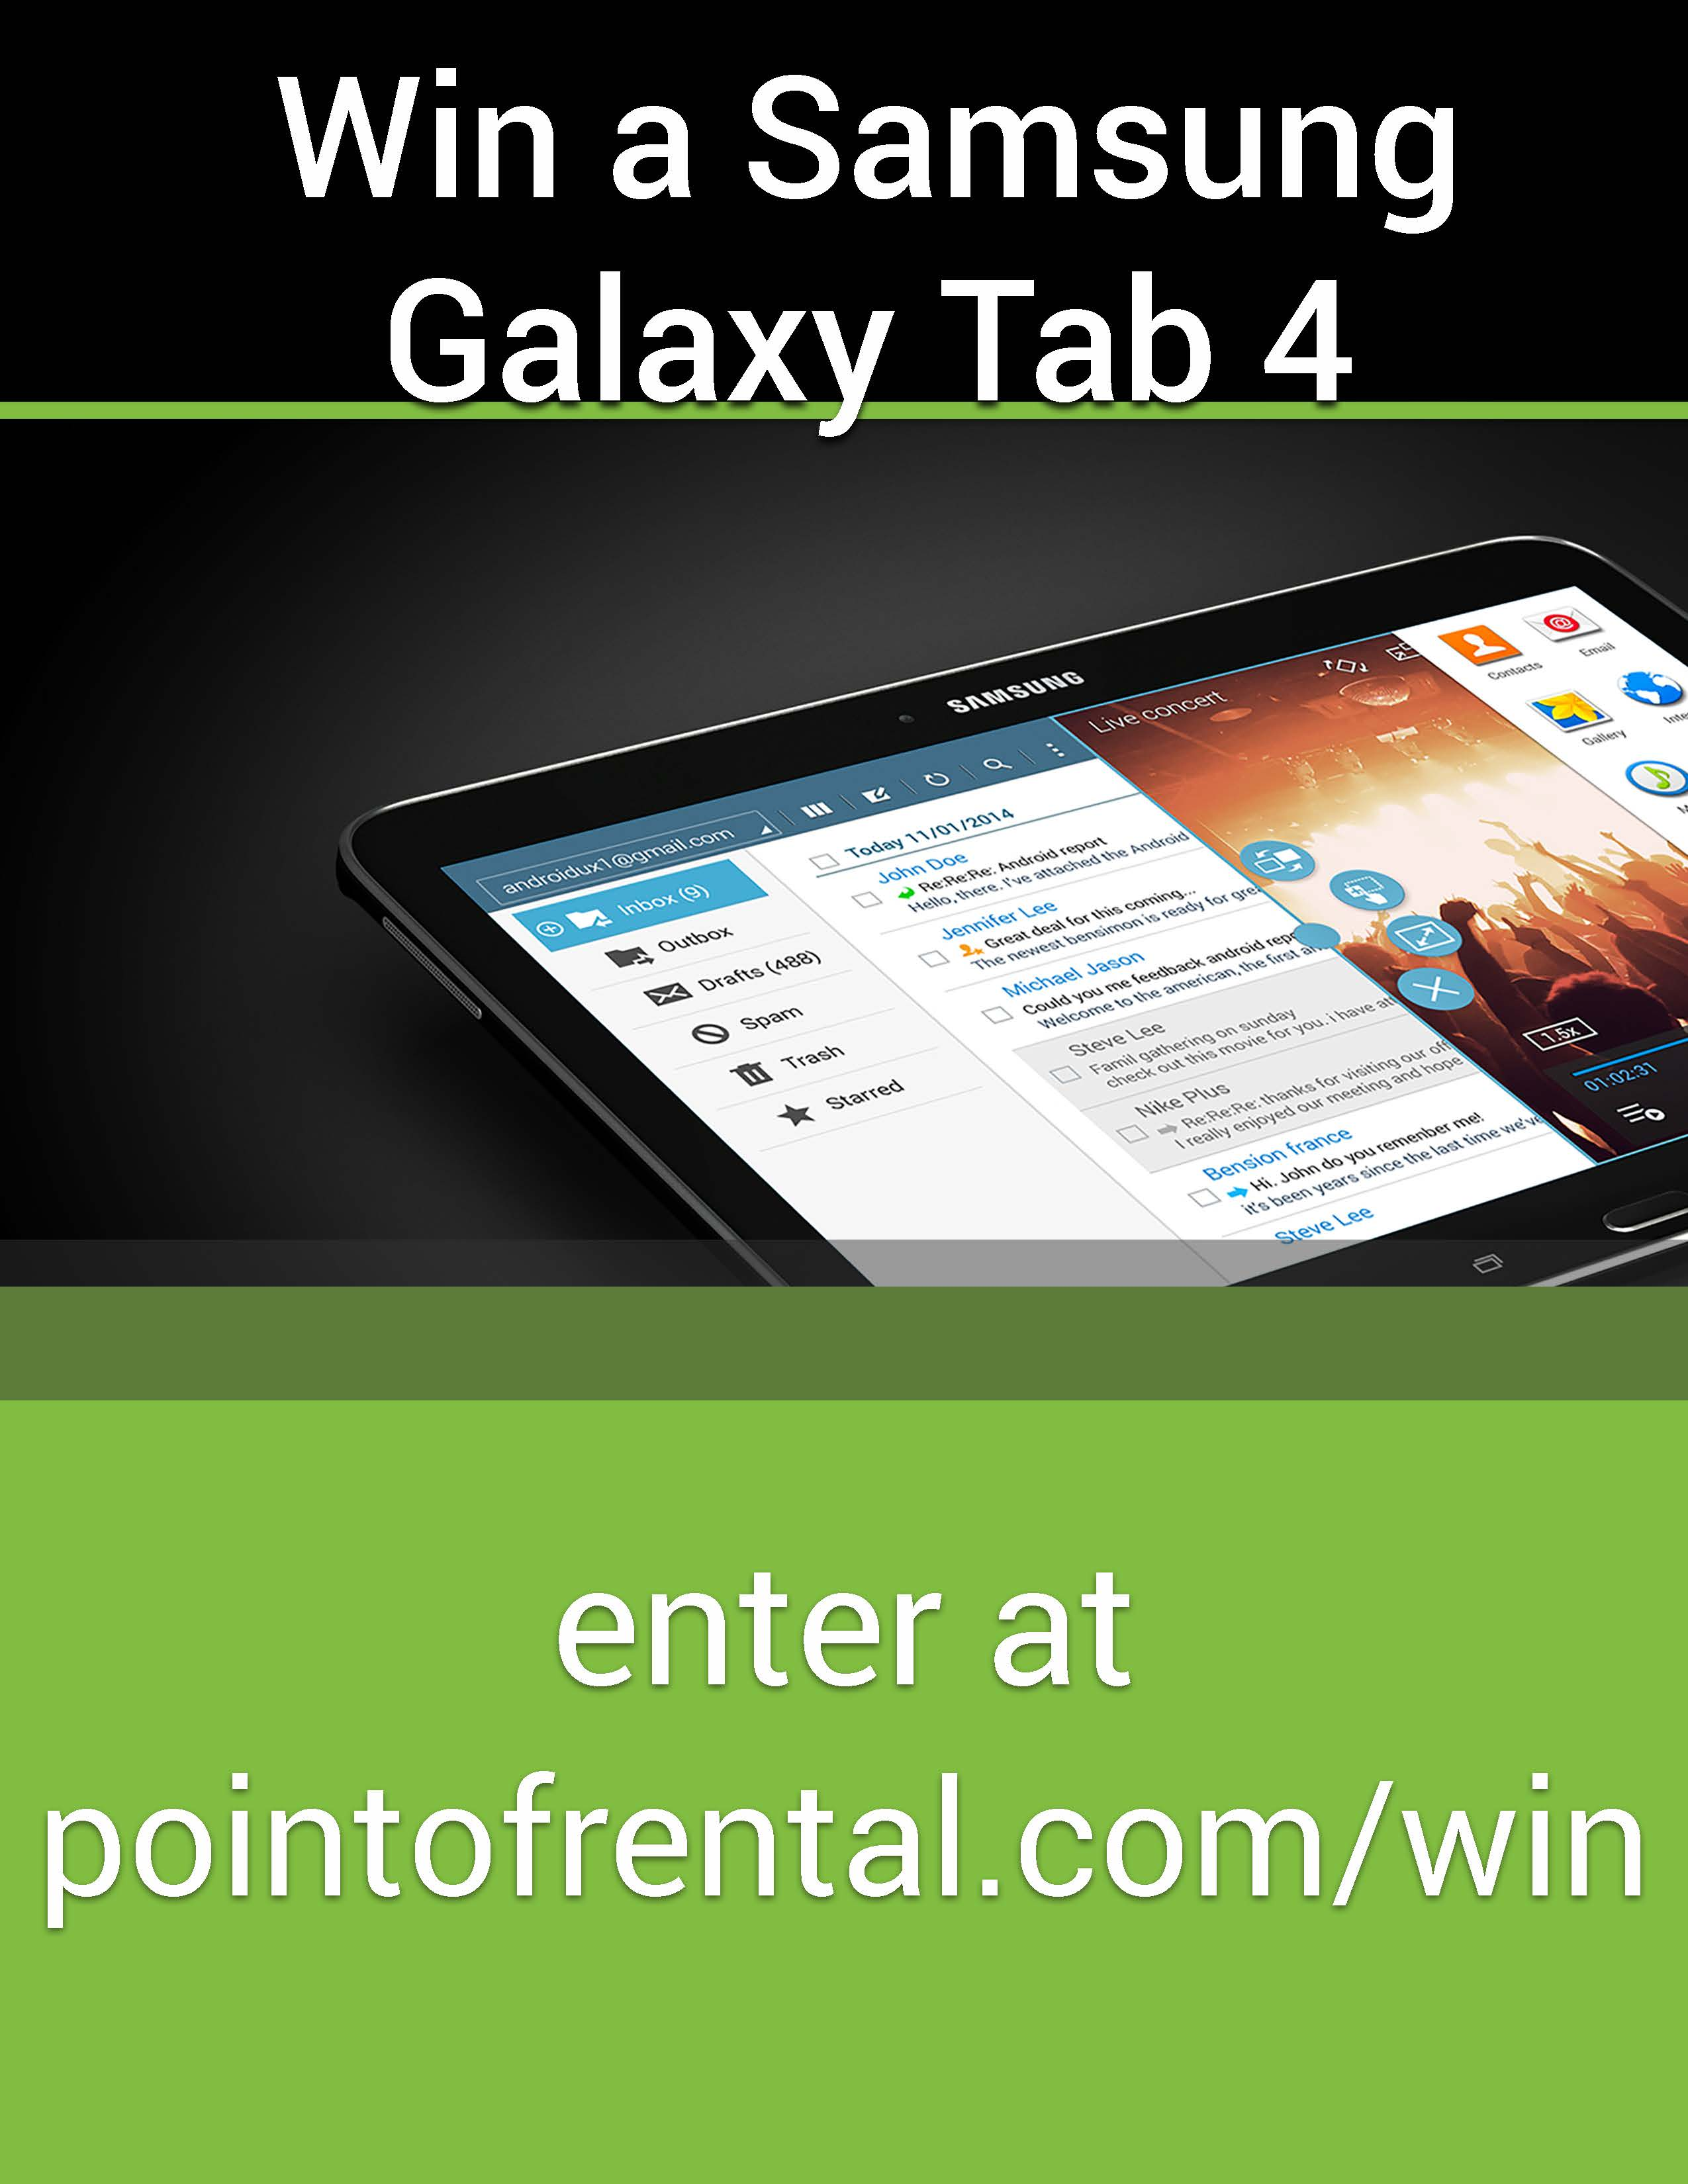 Stop at the Point of Rental Booth at The Rental Show and Win a Free Tablet